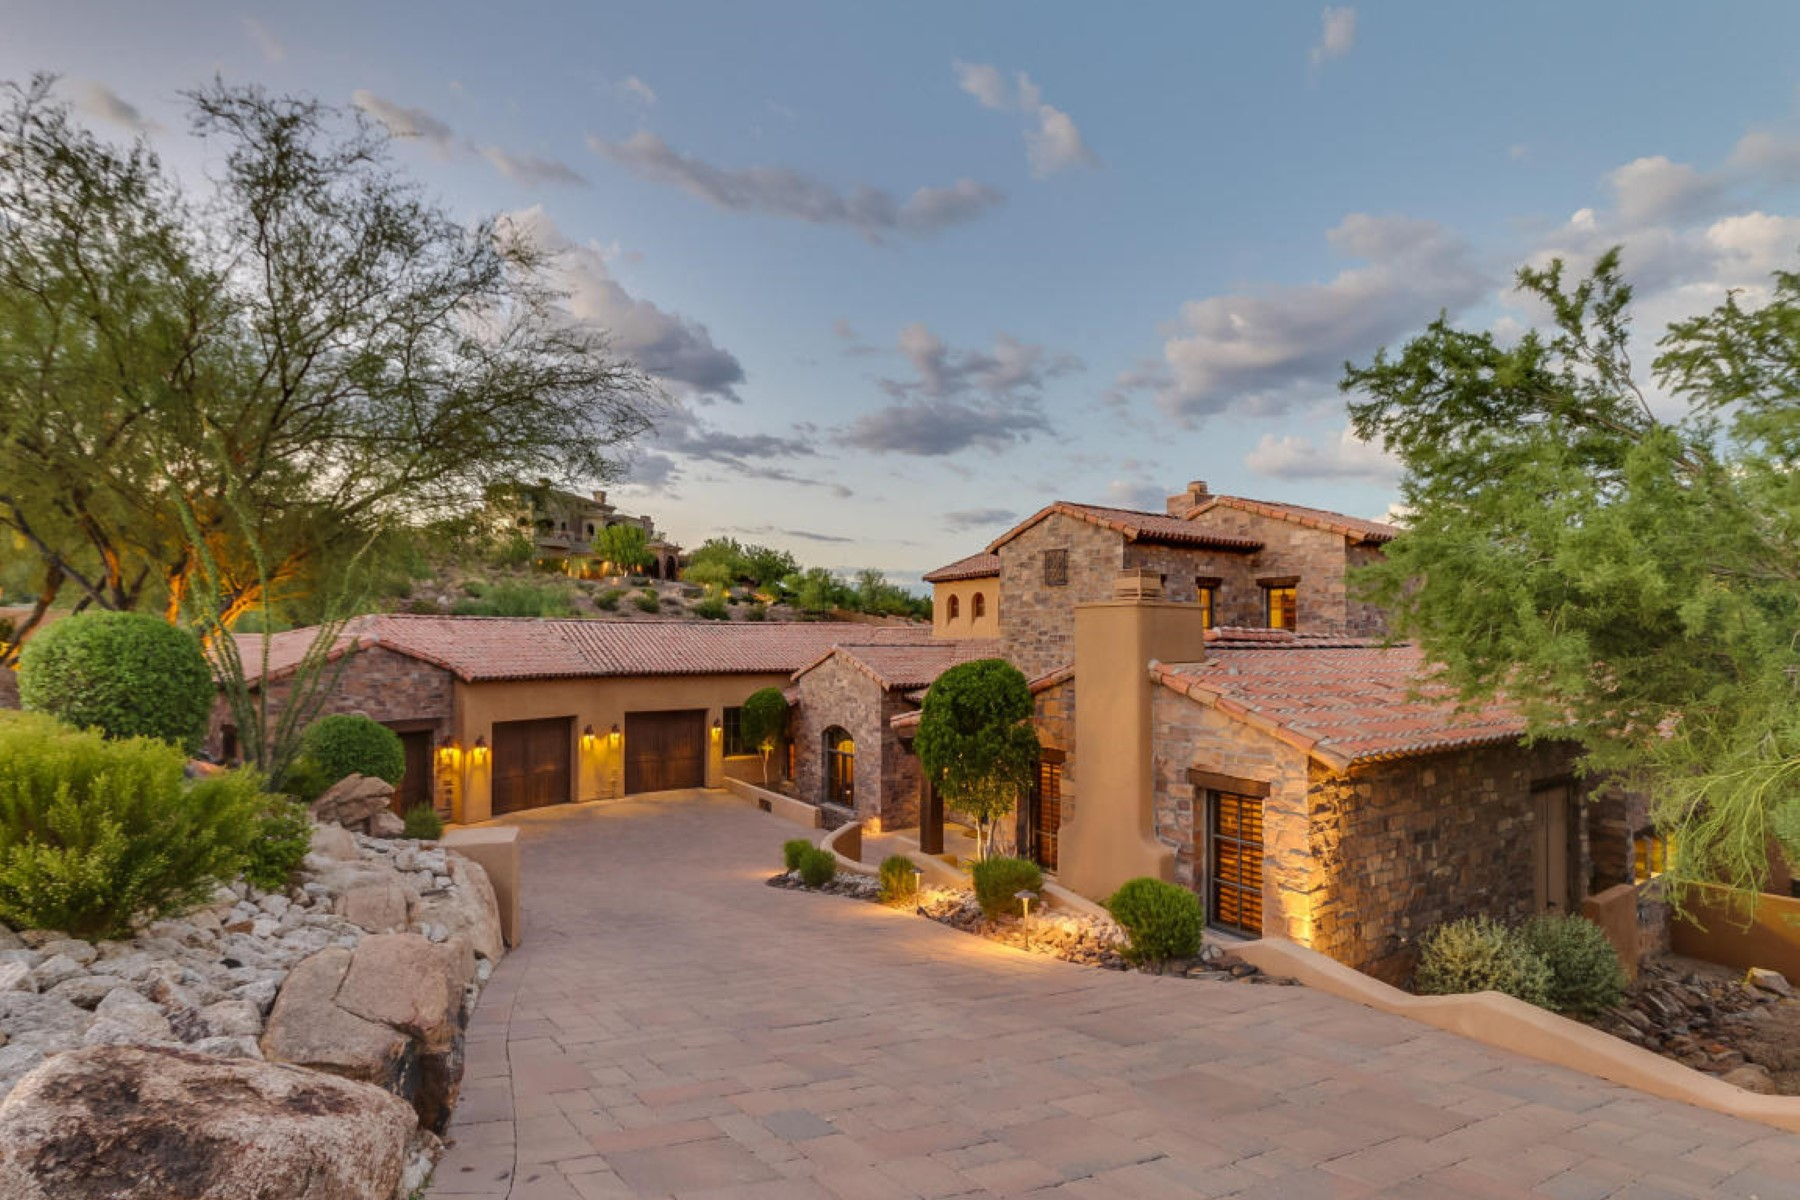 Single Family Home for Sale at Meticulous estate is nestled within coveted FireRock Country Club 9205 N Fireridge Trl Fountain Hills, Arizona, 85268 United States